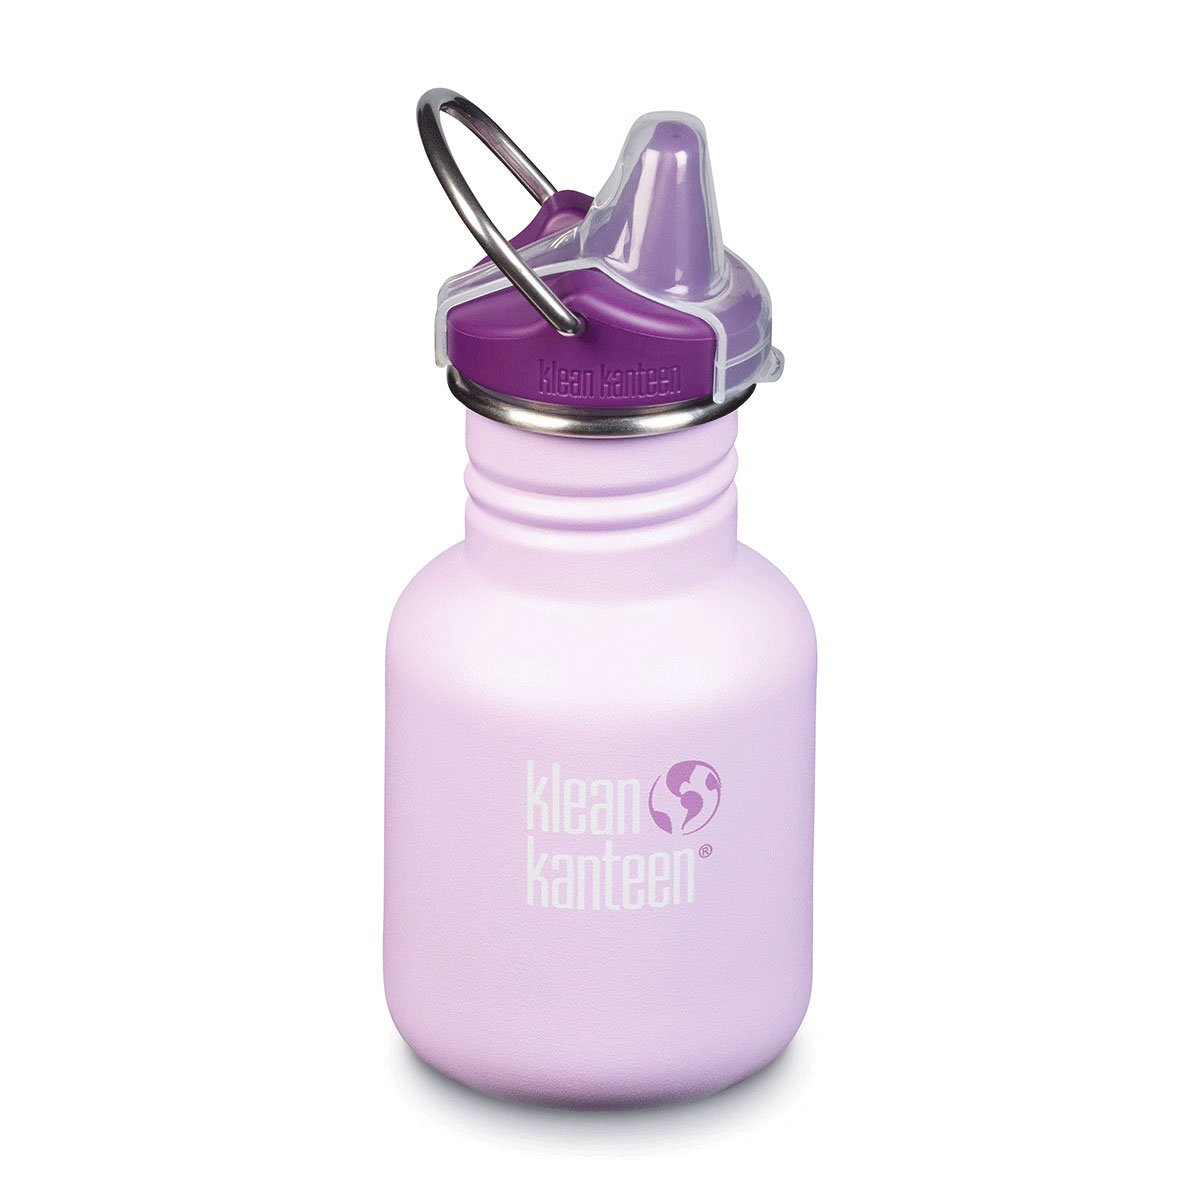 Klean Kanteen Kid Kanteen 355ml 12oz Stainless Steel Bottle Klean Kanteen Sippy Cups Sippy / Sugarplum Fairy at Little Earth Nest Eco Shop